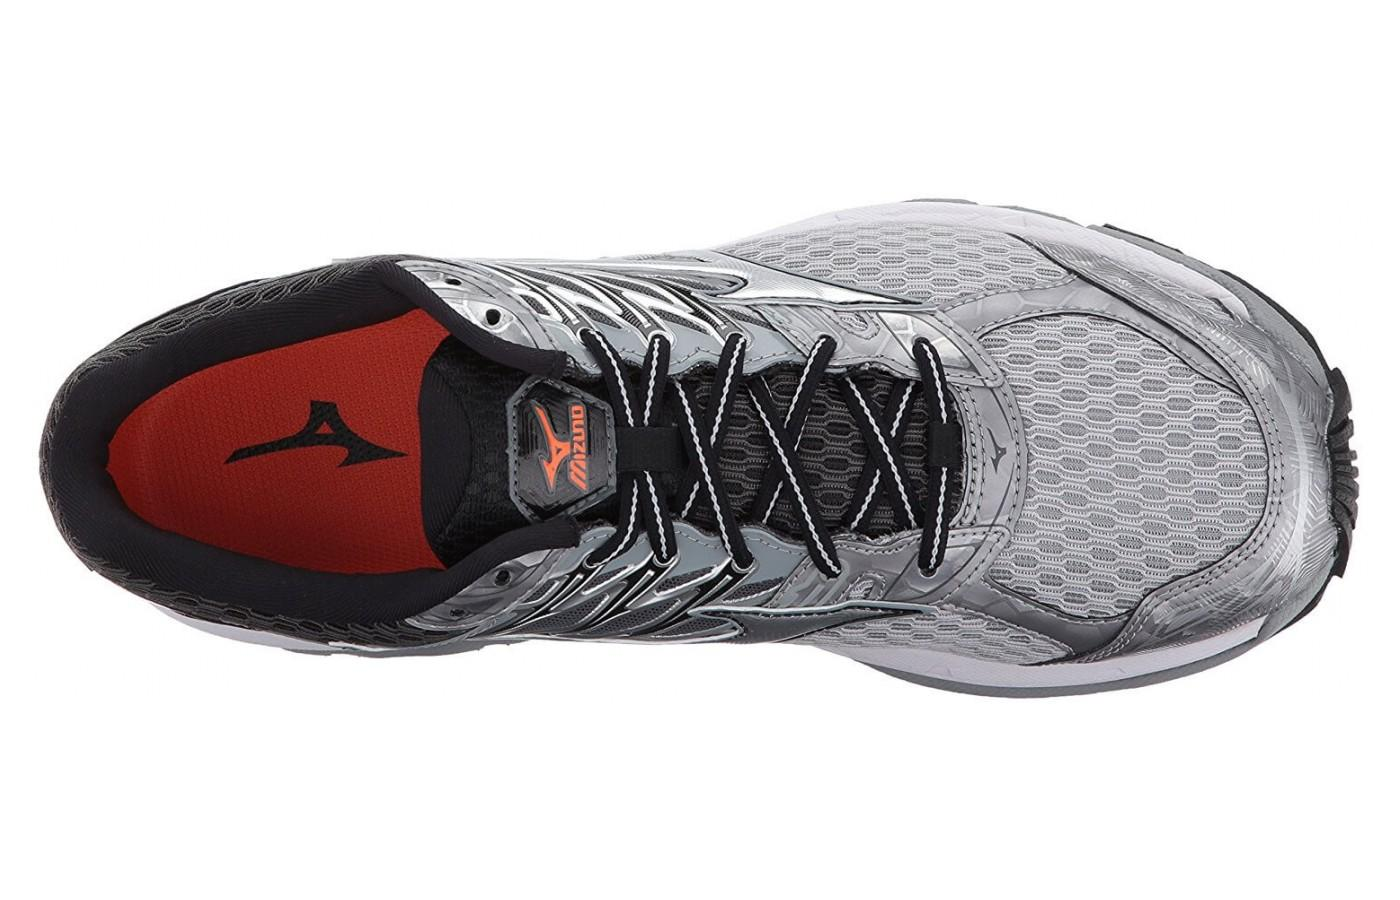 Men's Wave Paradox 4 has a breathable mesh upper